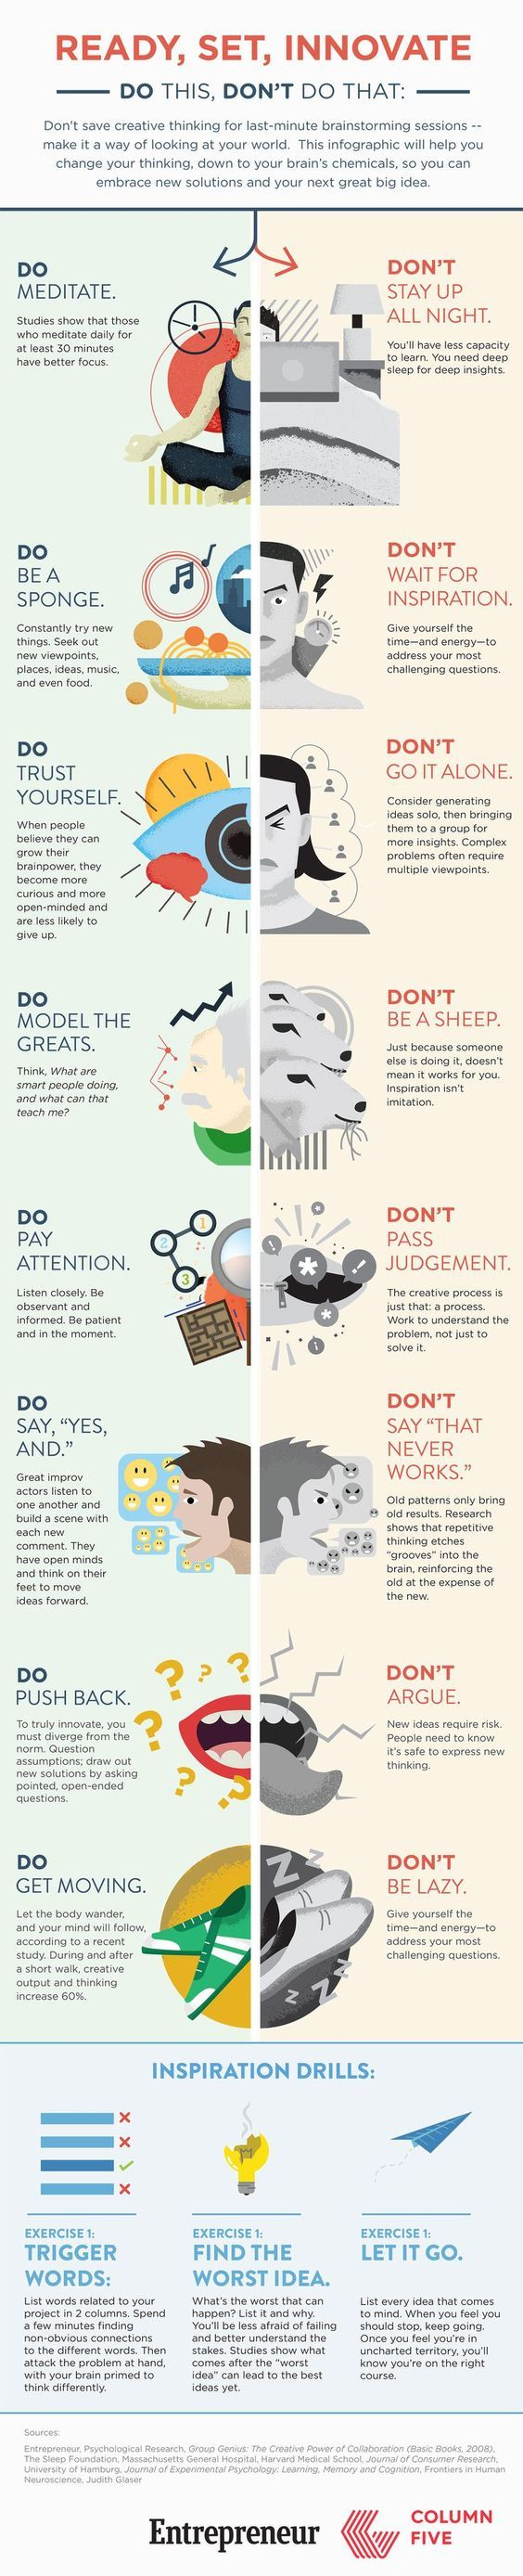 What to do and what NOT TO DO if you want to be Successful! -: